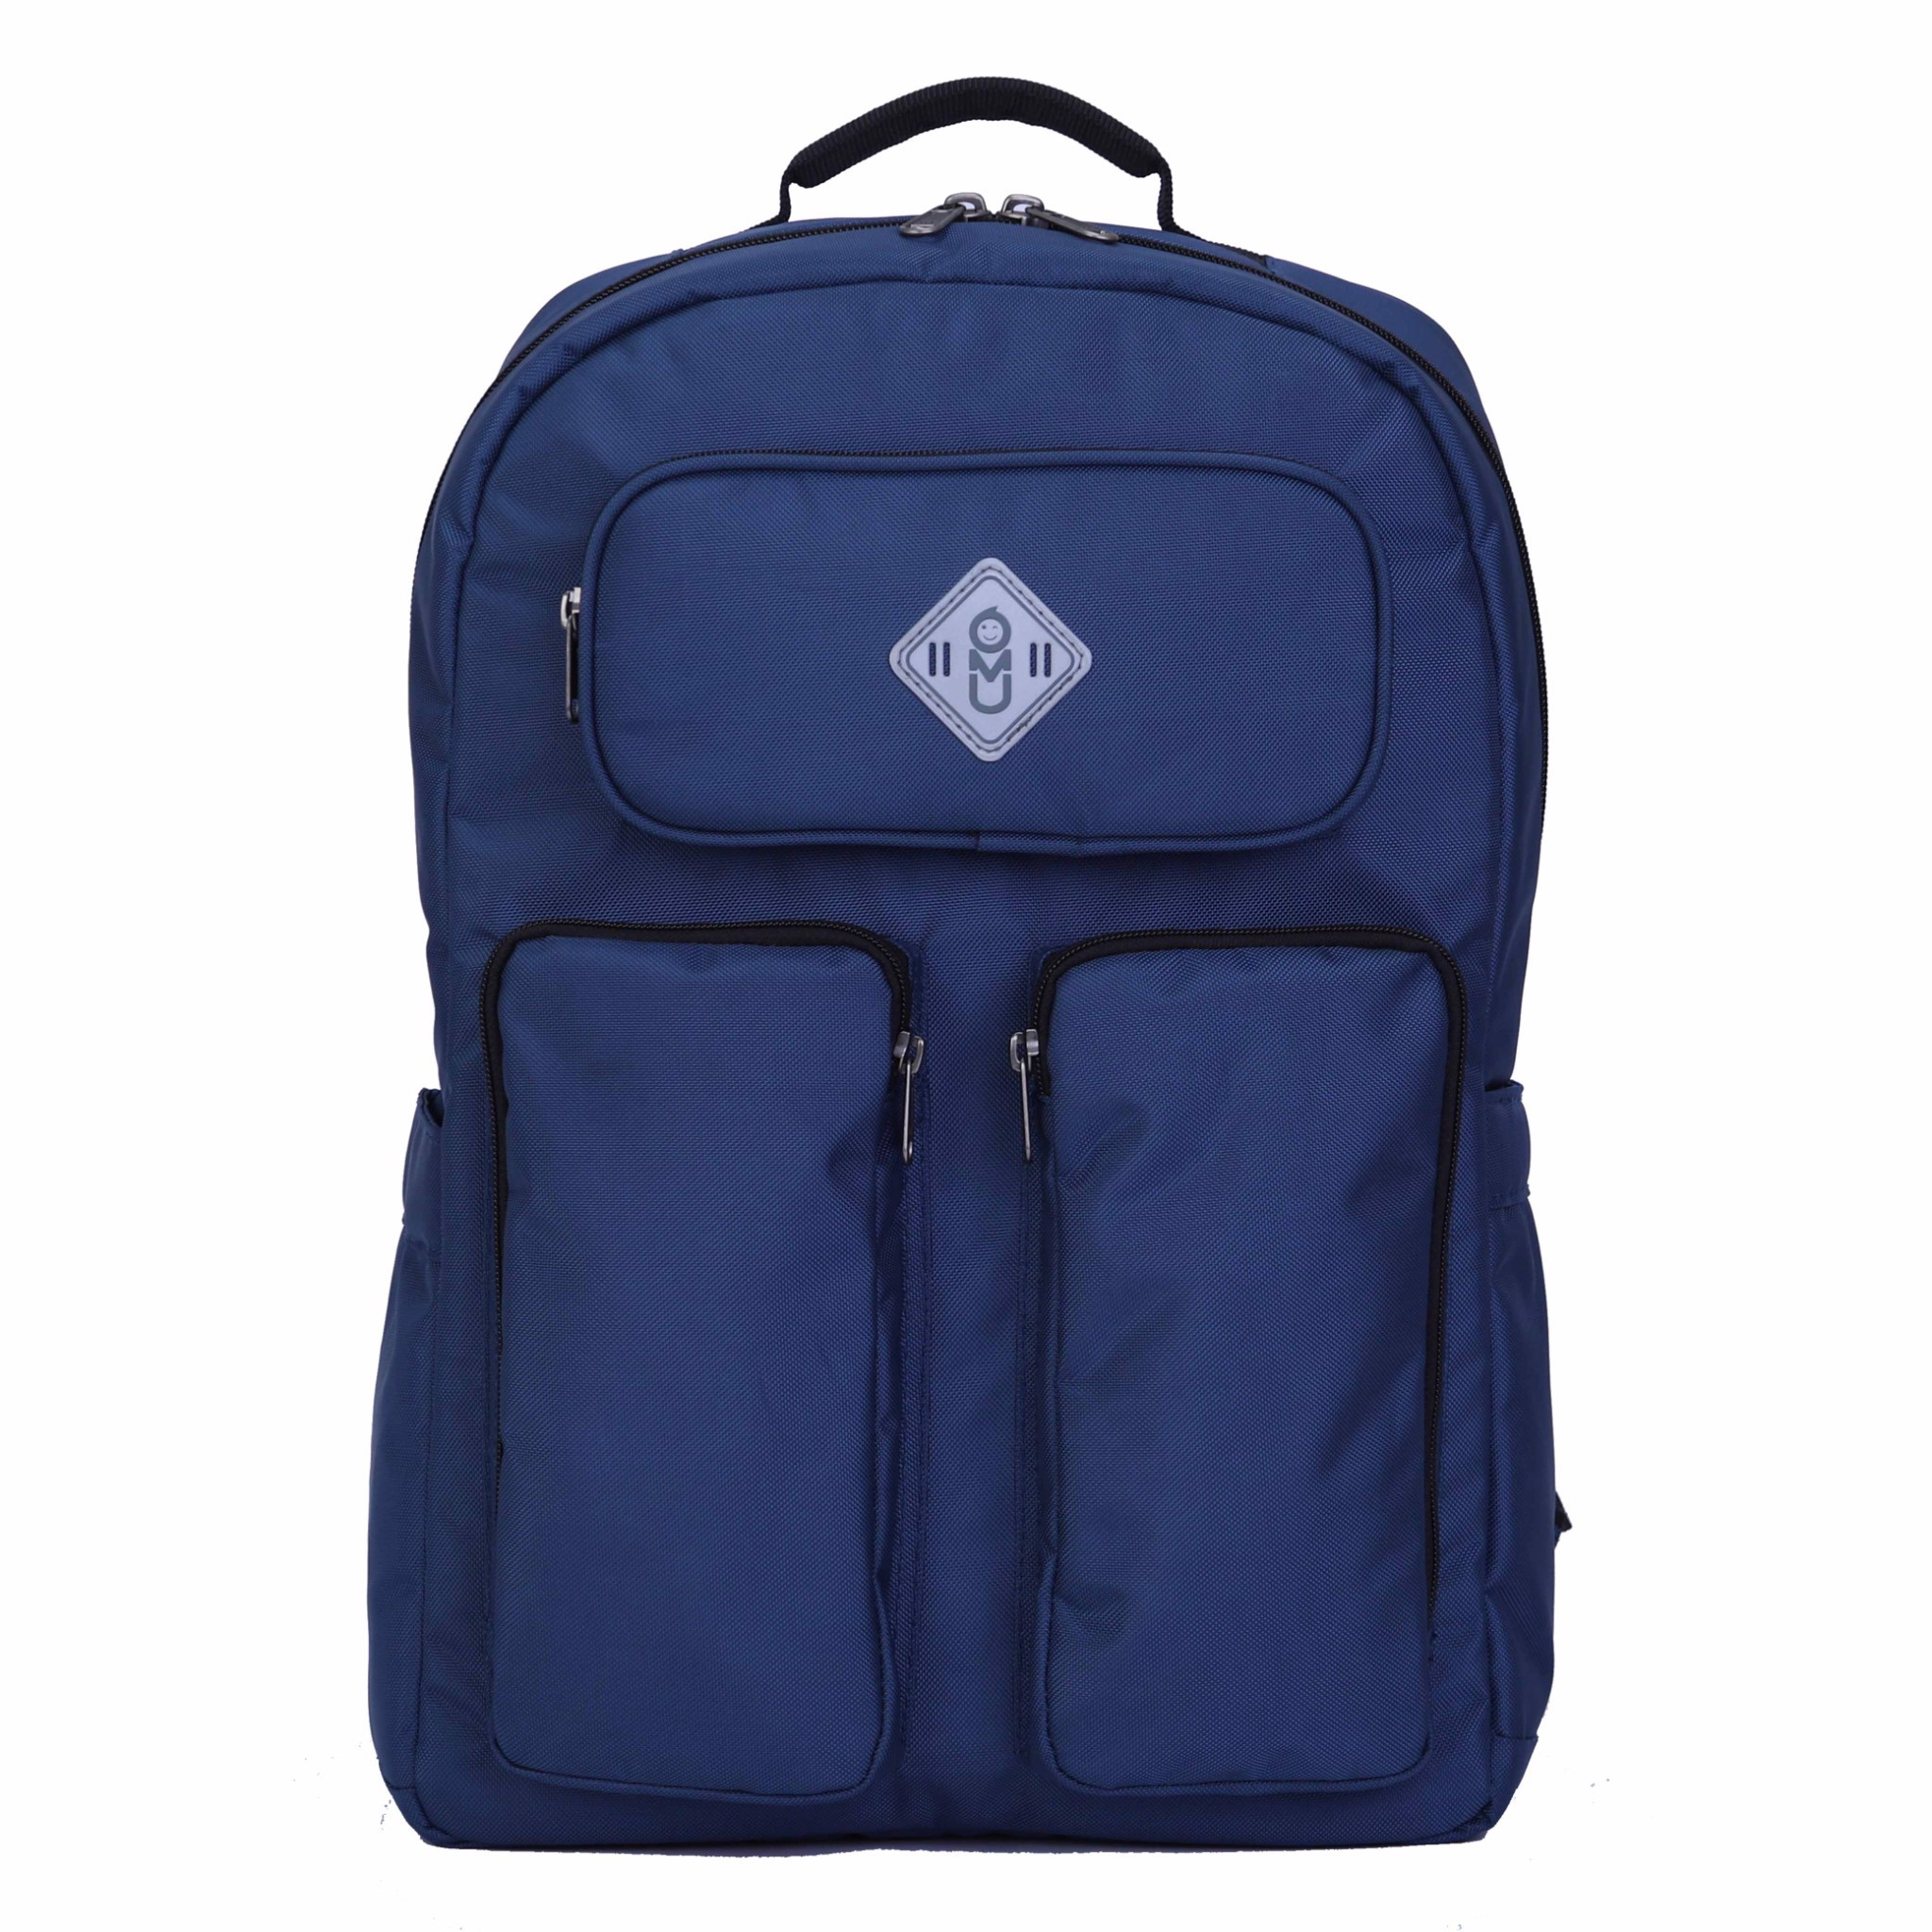 Balo UMO HUNKY Navy BackPack - Balo Laptop Cao Cấp